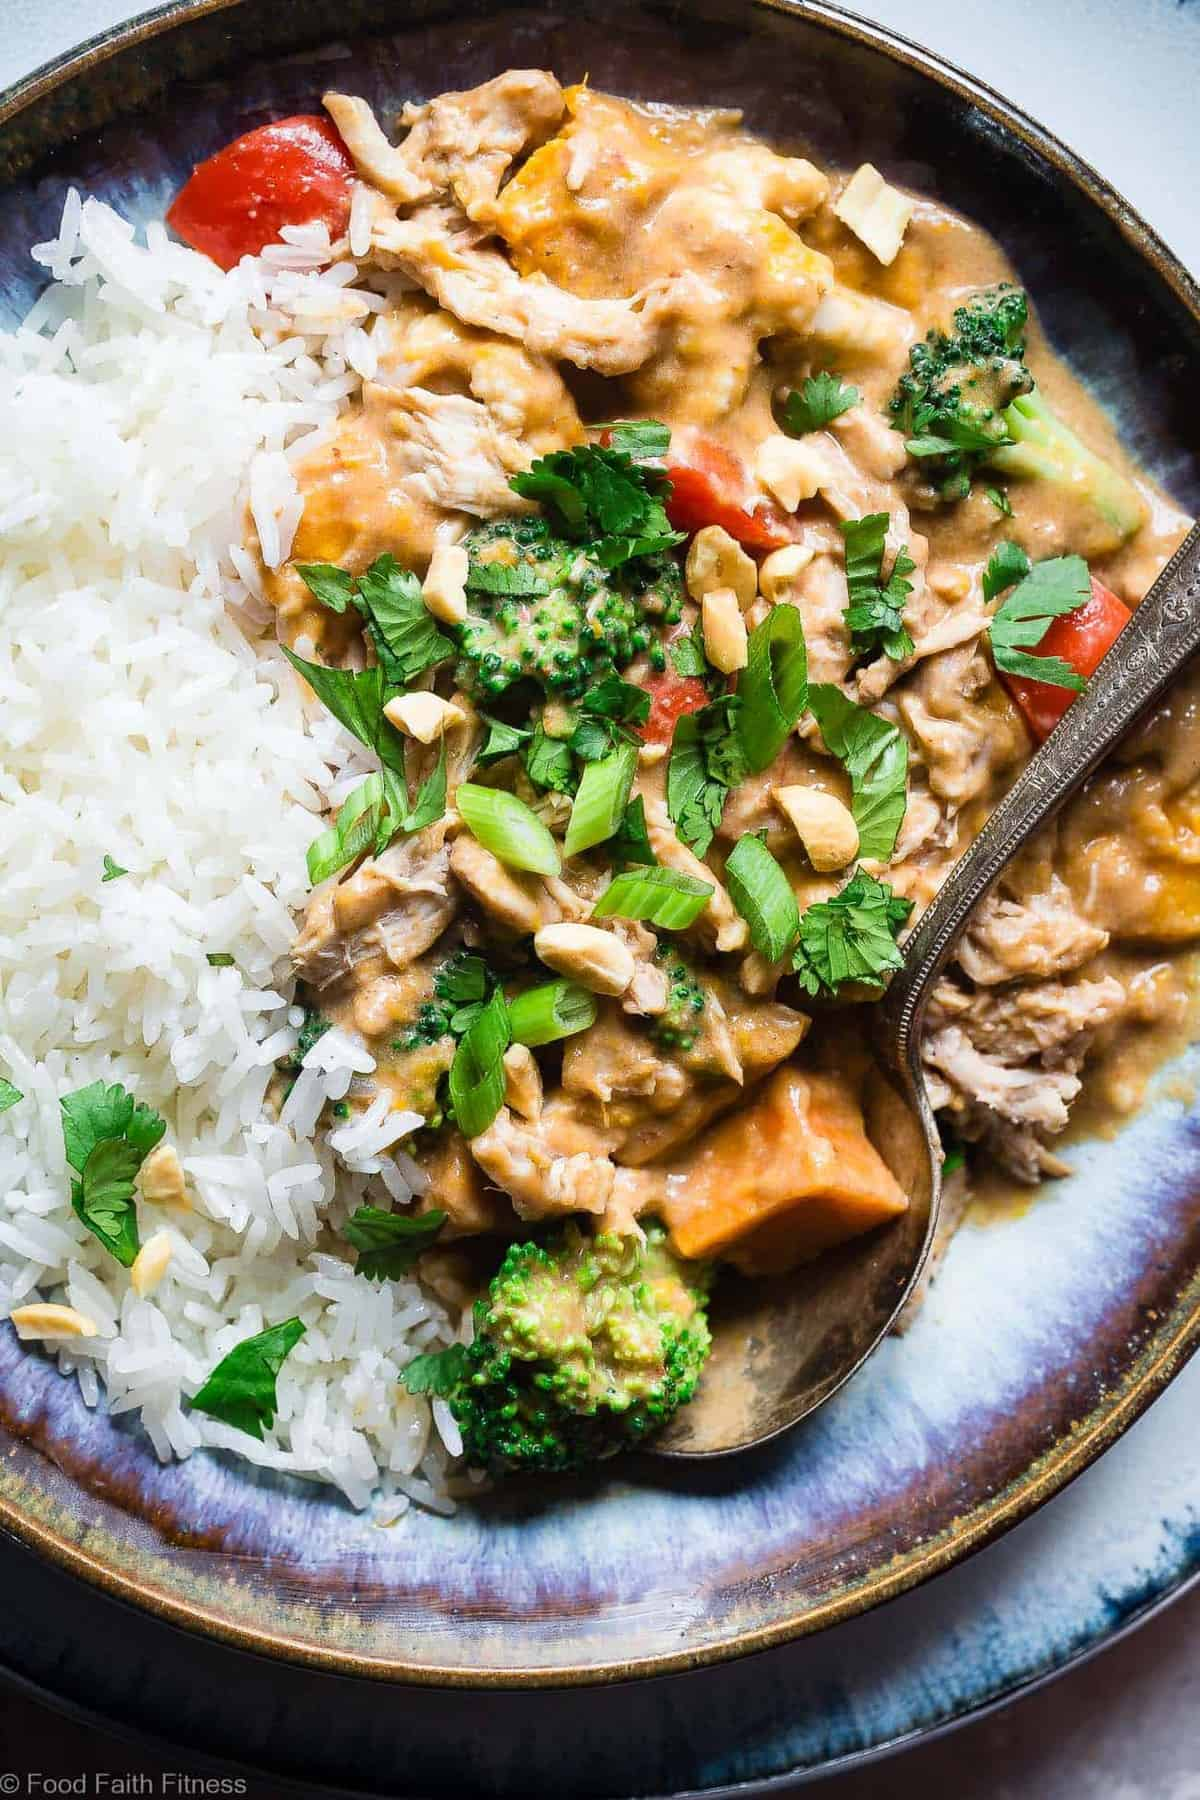 Easy Crockpot Thai Peanut Butter Chicken Curry - The slow cooker does all the work for you in this EASY, weeknight family-friendly dinner that is gluten and dairy free and packed protein. Great for meal prep too!   #Foodfaithfitness   #Glutenfree #Dairyfree #Slowcooker #Crockpot #Healthy